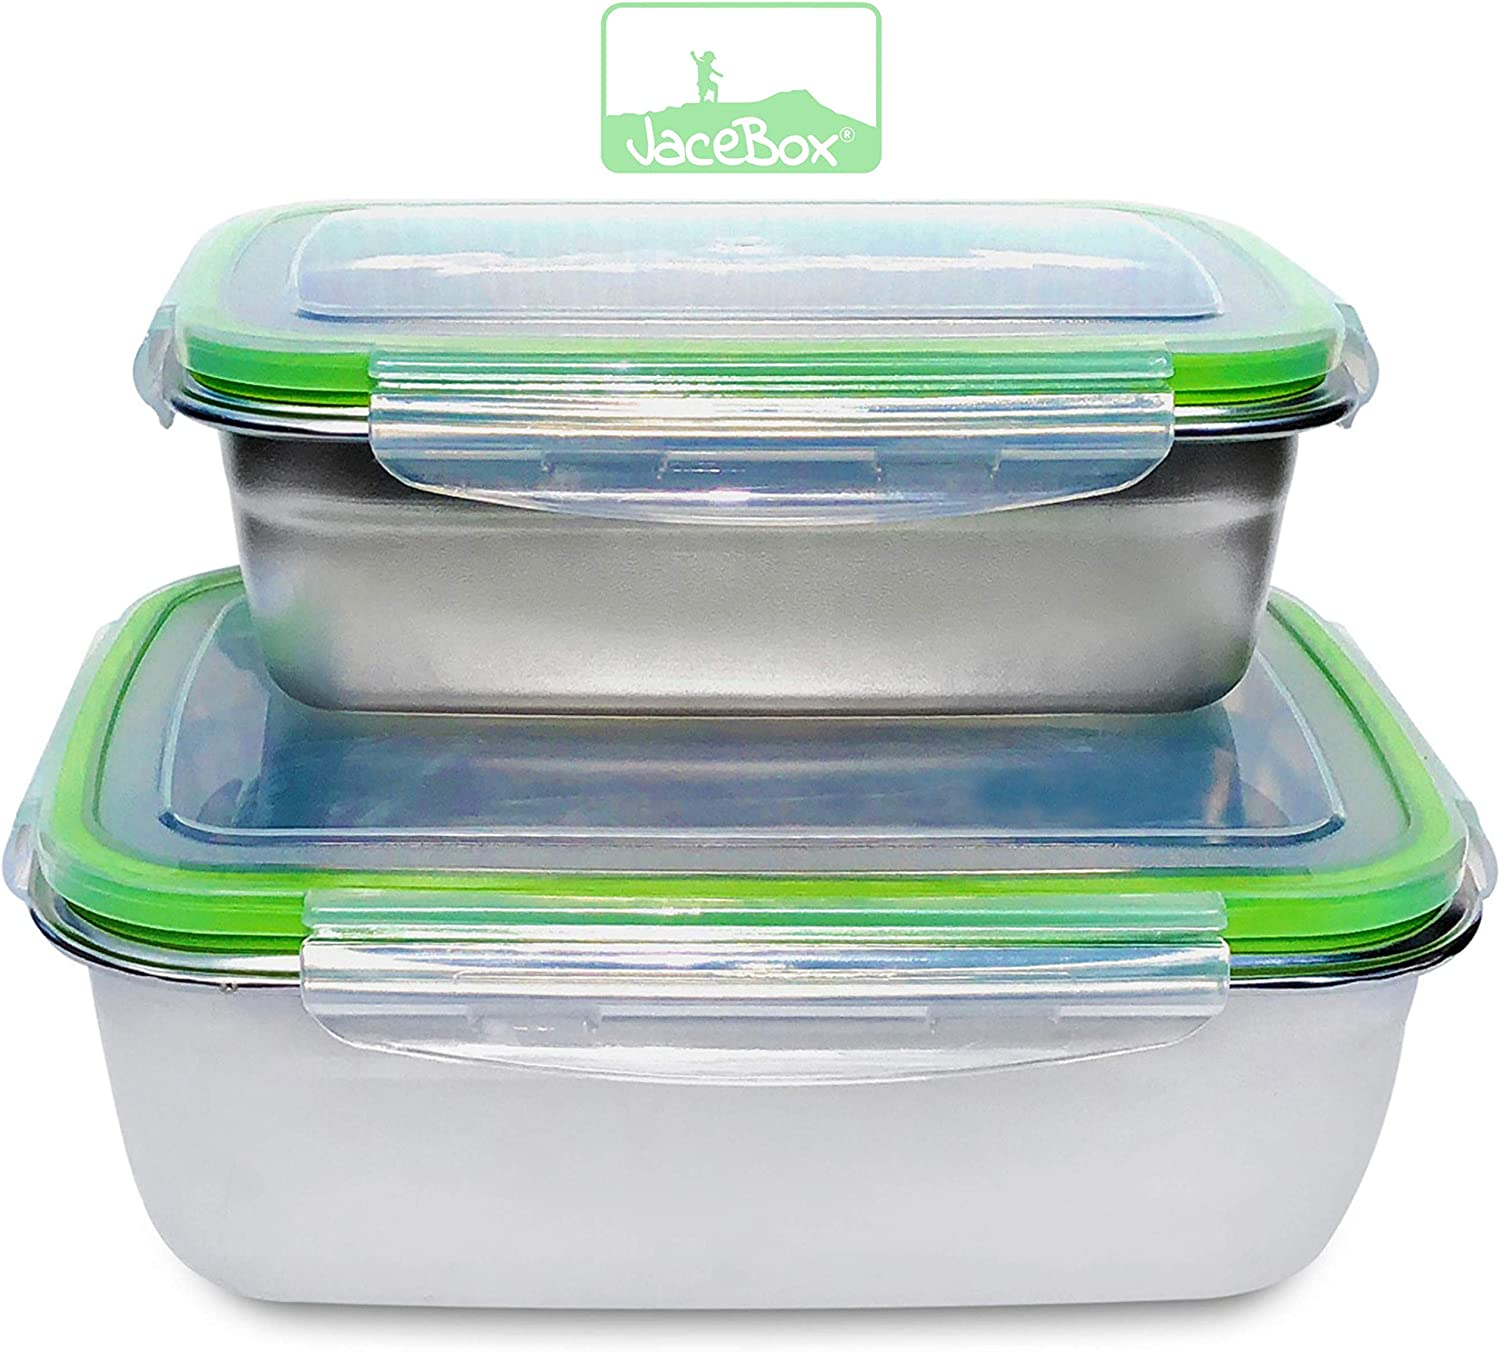 JaceBox Stainless Steel Containers - Bento Boxes, New X-Large and Large Lunch Box, BPA Free, Great Meal Prep Containers for Portion Control Salads Sandwiches.Set of 2, Leakproof by JaceBox!